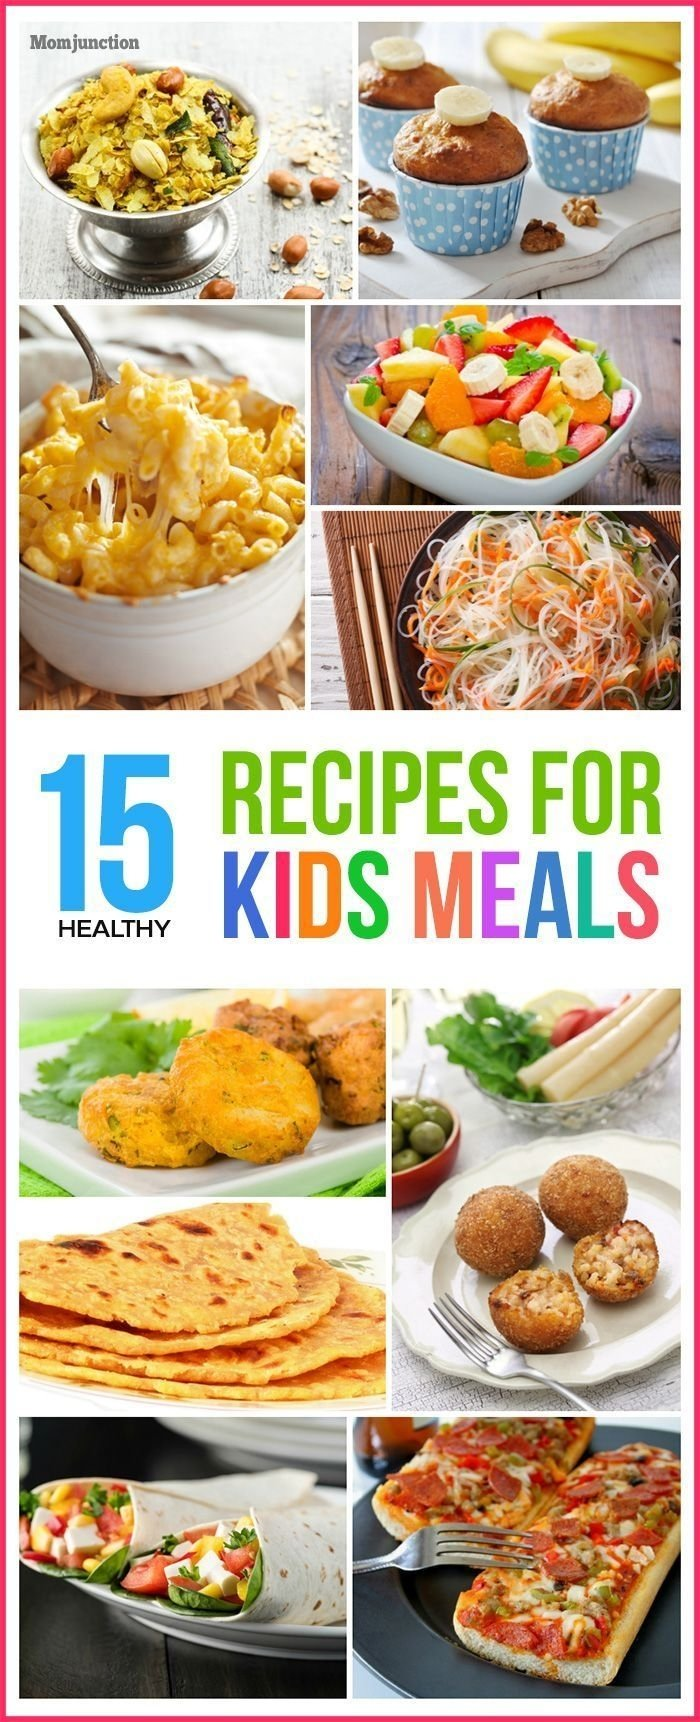 10 Gorgeous Lunch Ideas For Kids At Home top 15 healthy recipes for kids meals kid check picky eaters and 2021